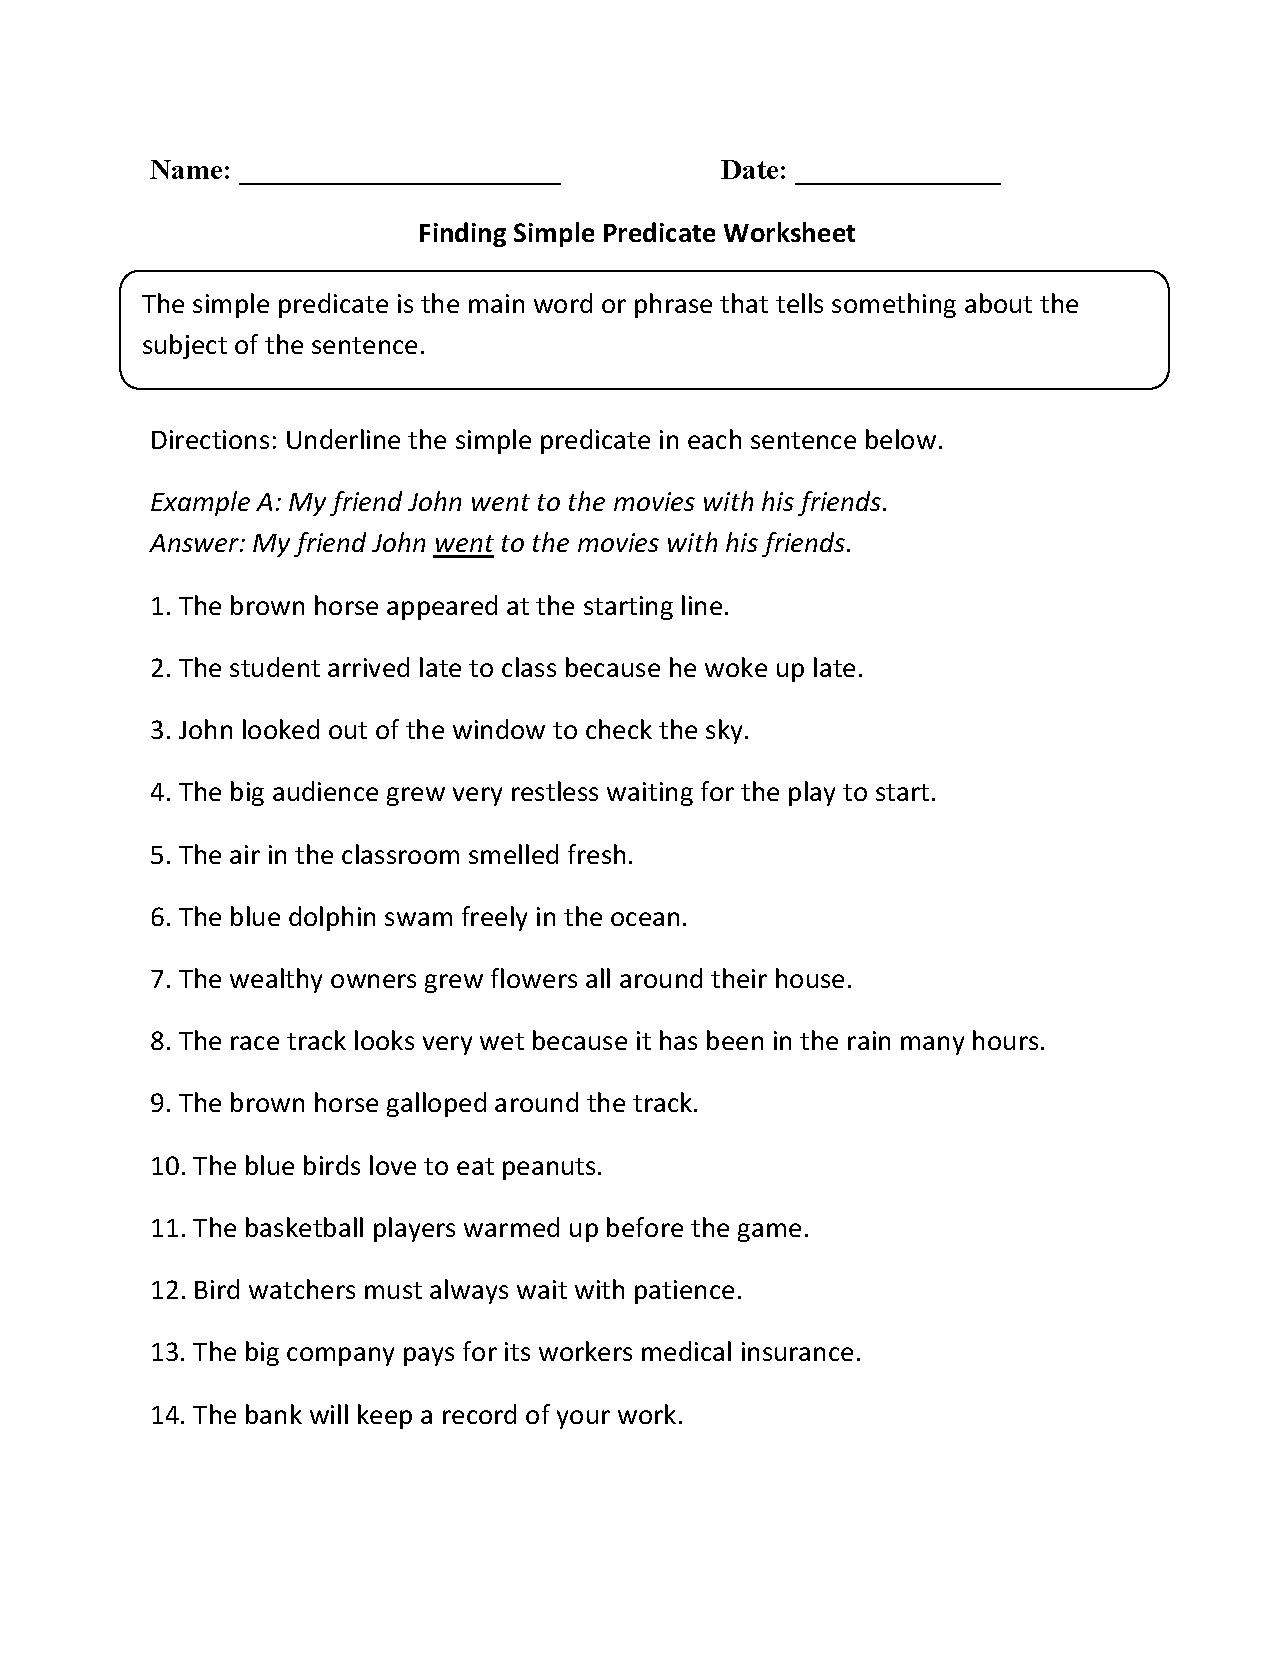 Subject and Predicate Worksheets | Finding Simple Predicate Worksheet